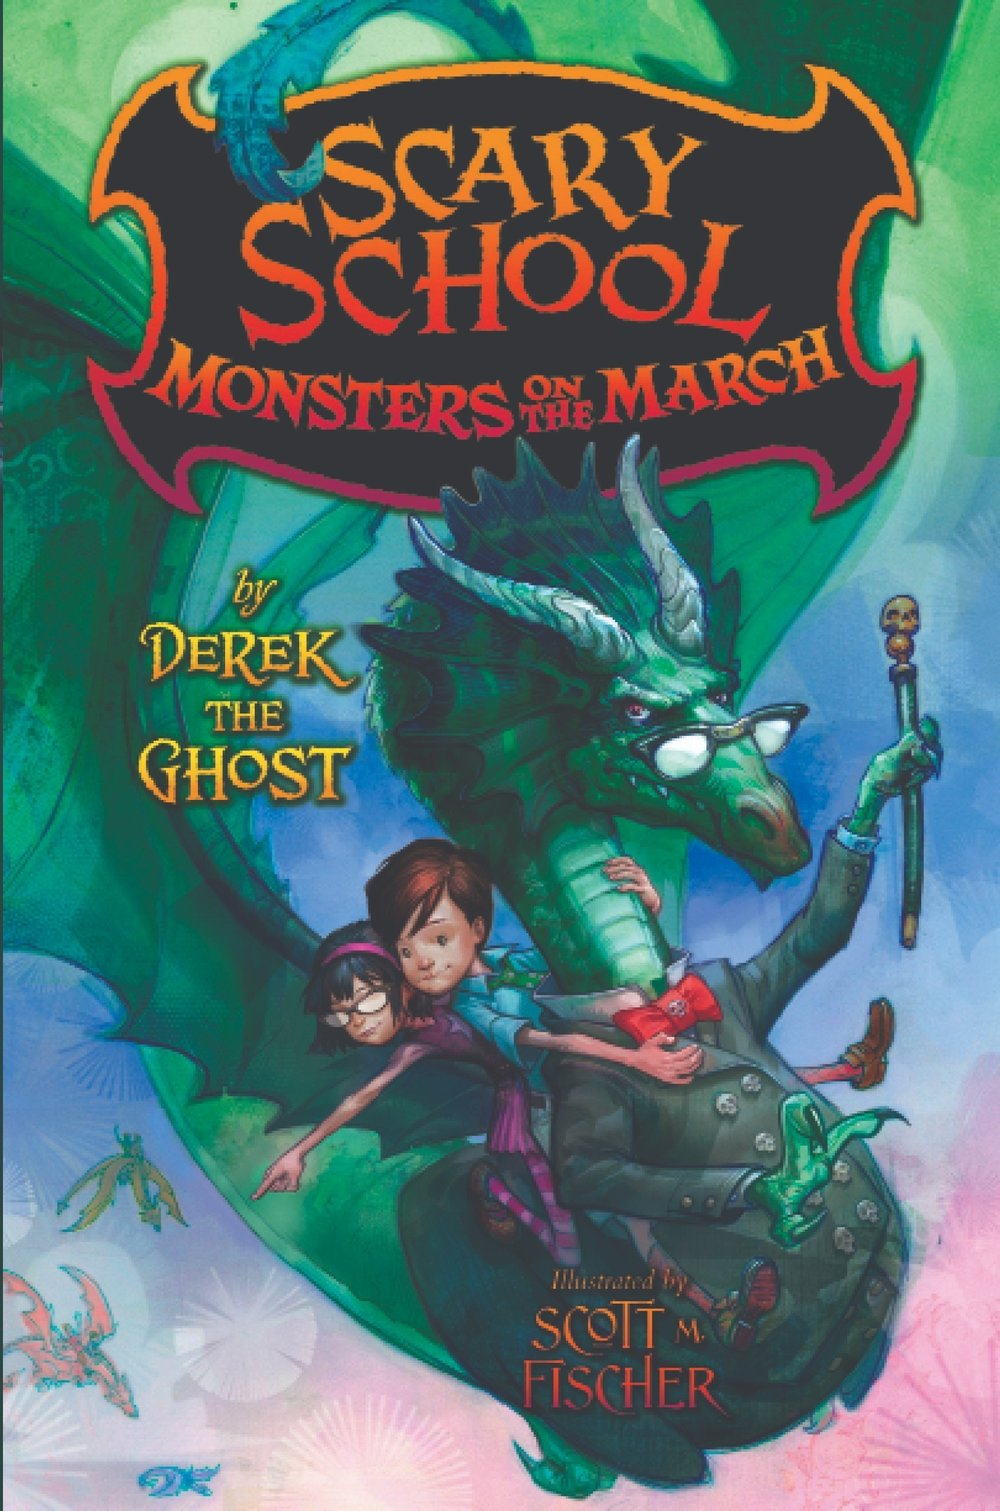 Scary School #2:Monsters on the March - Purchase on AmazonPurchase on Barnes and Noble